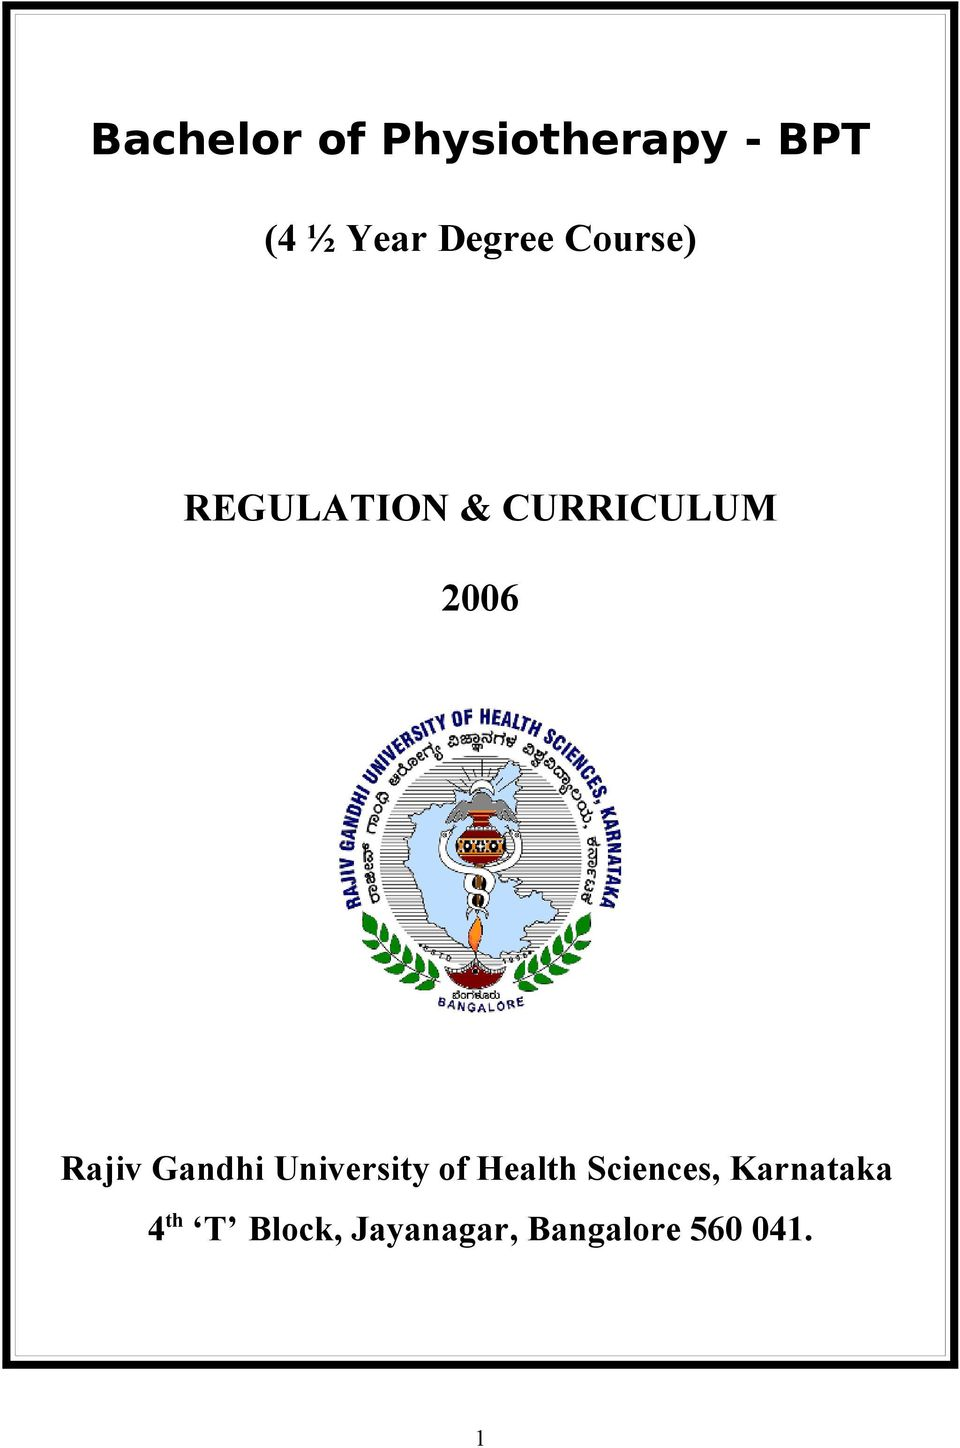 Bachelor of Physiotherapy - BPT - PDF